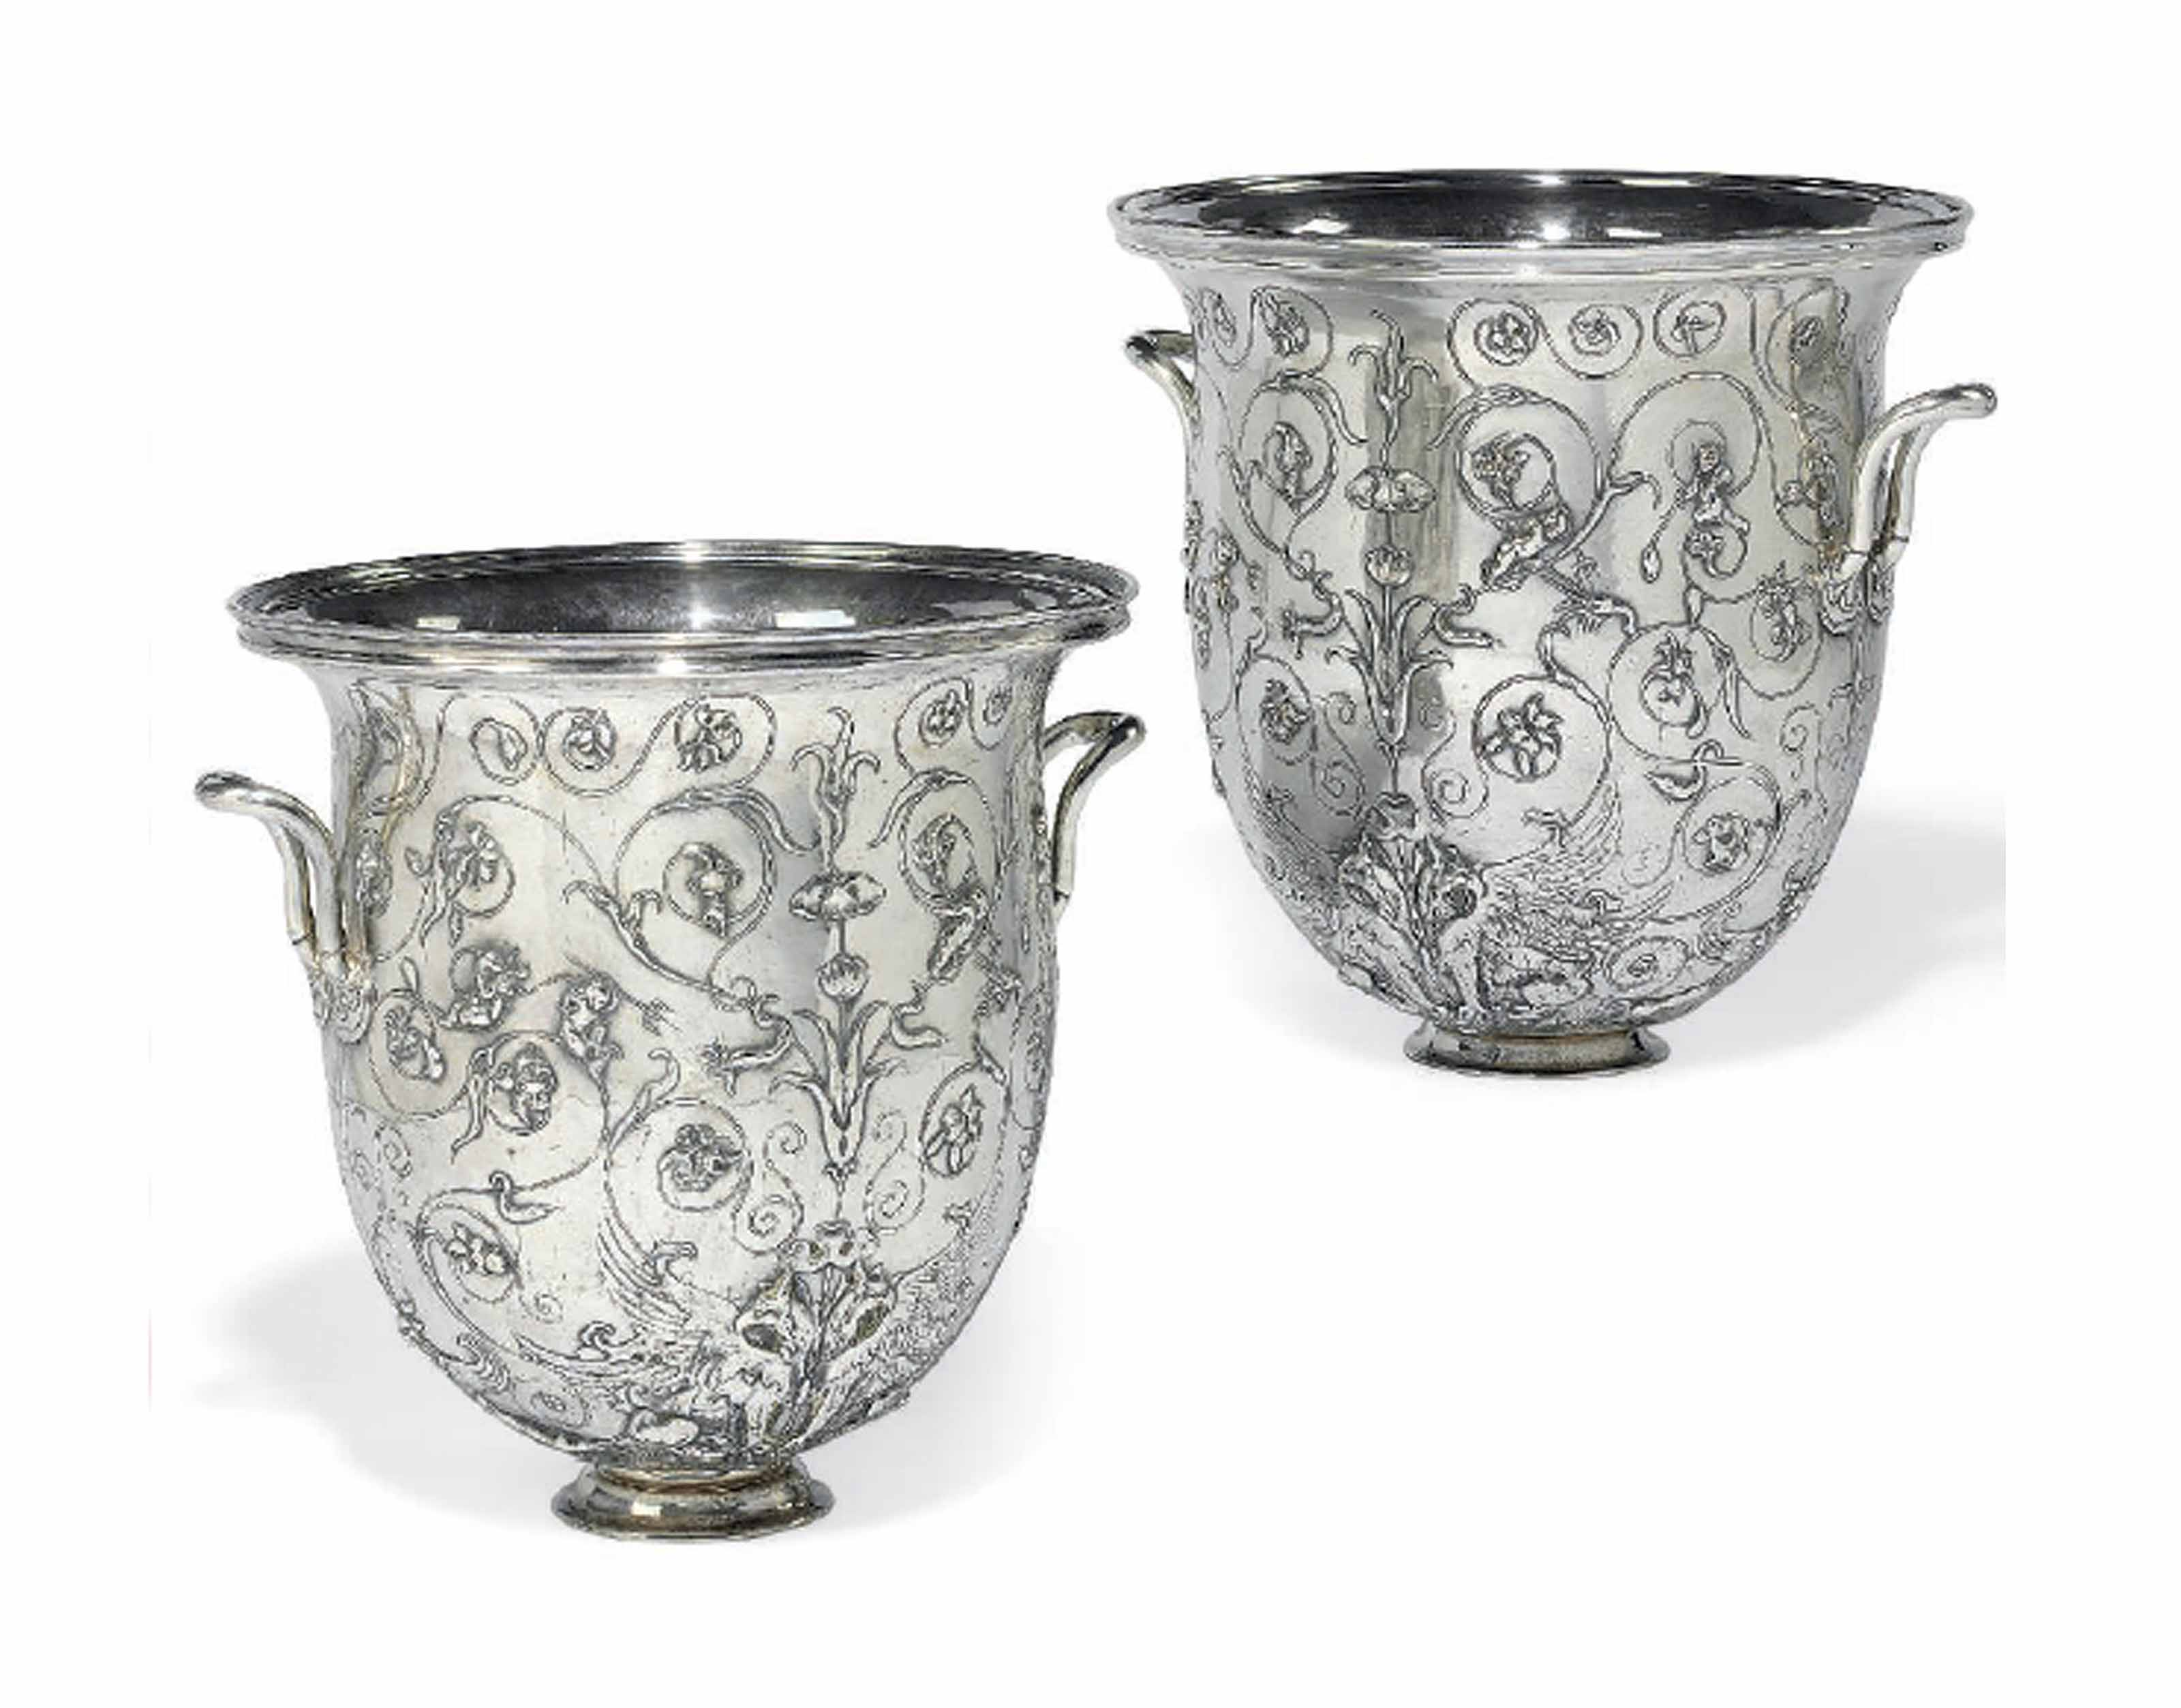 A PAIR OF FRENCH SILVER ELECTROPLATED JARDINIERES